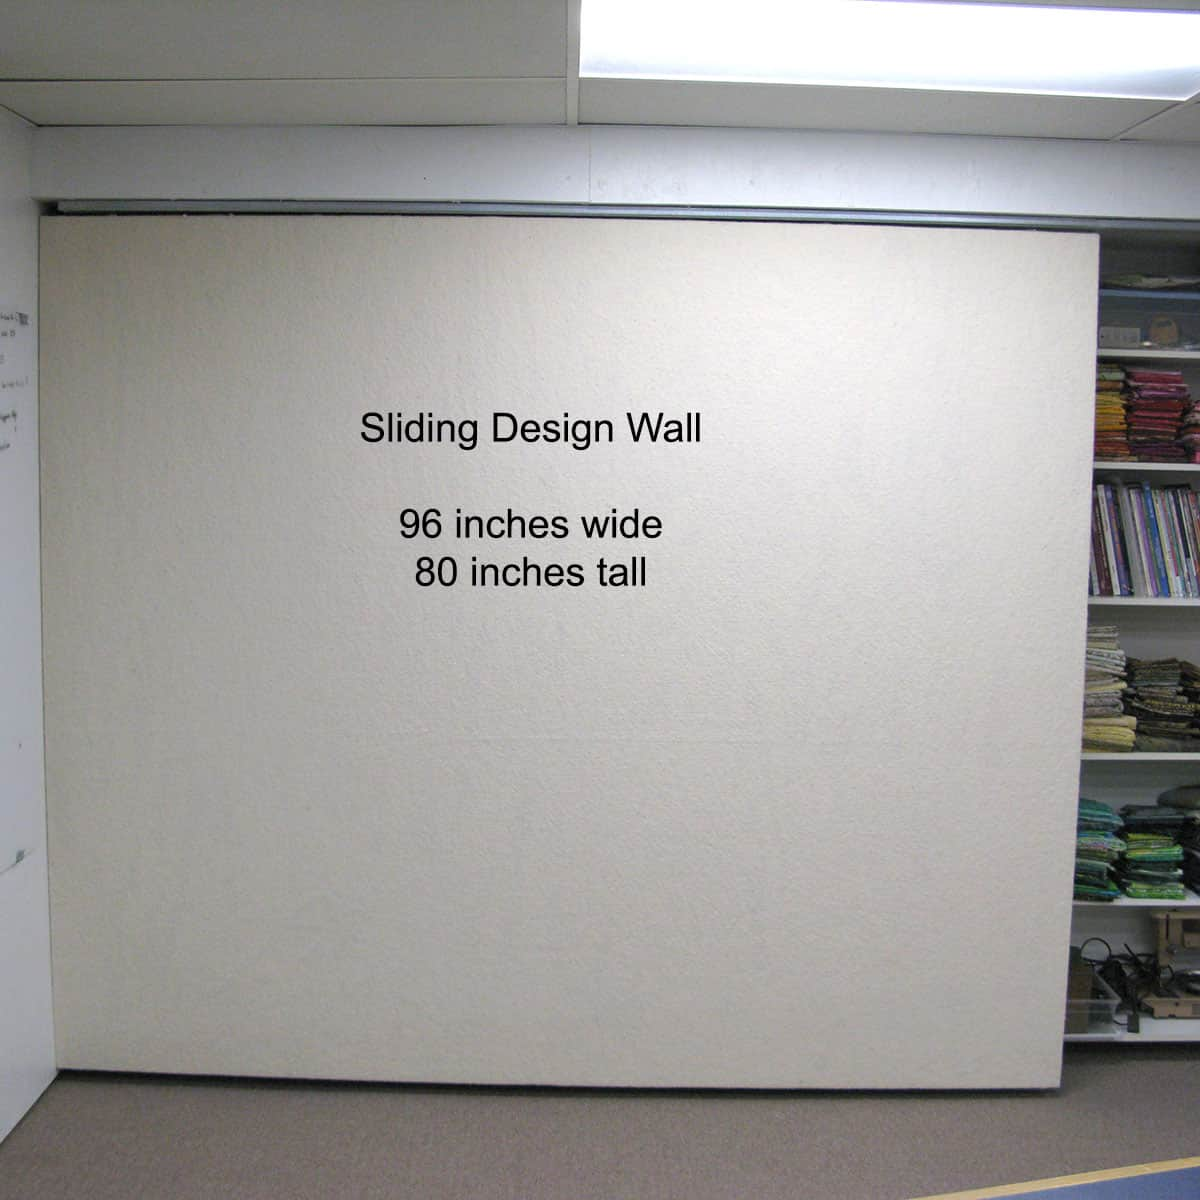 Size of design wall